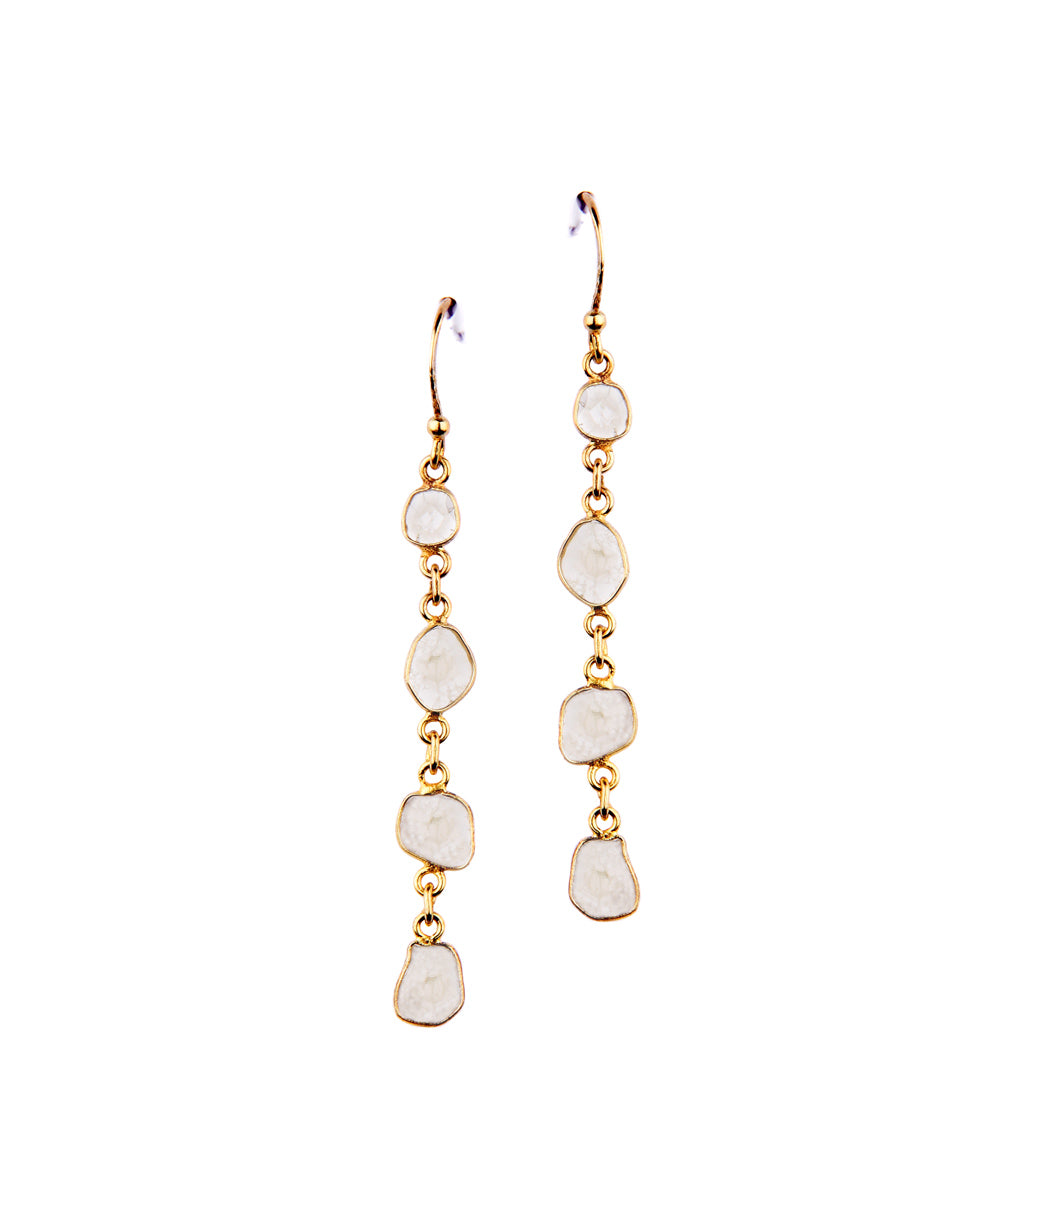 Allure Diamond Earrings